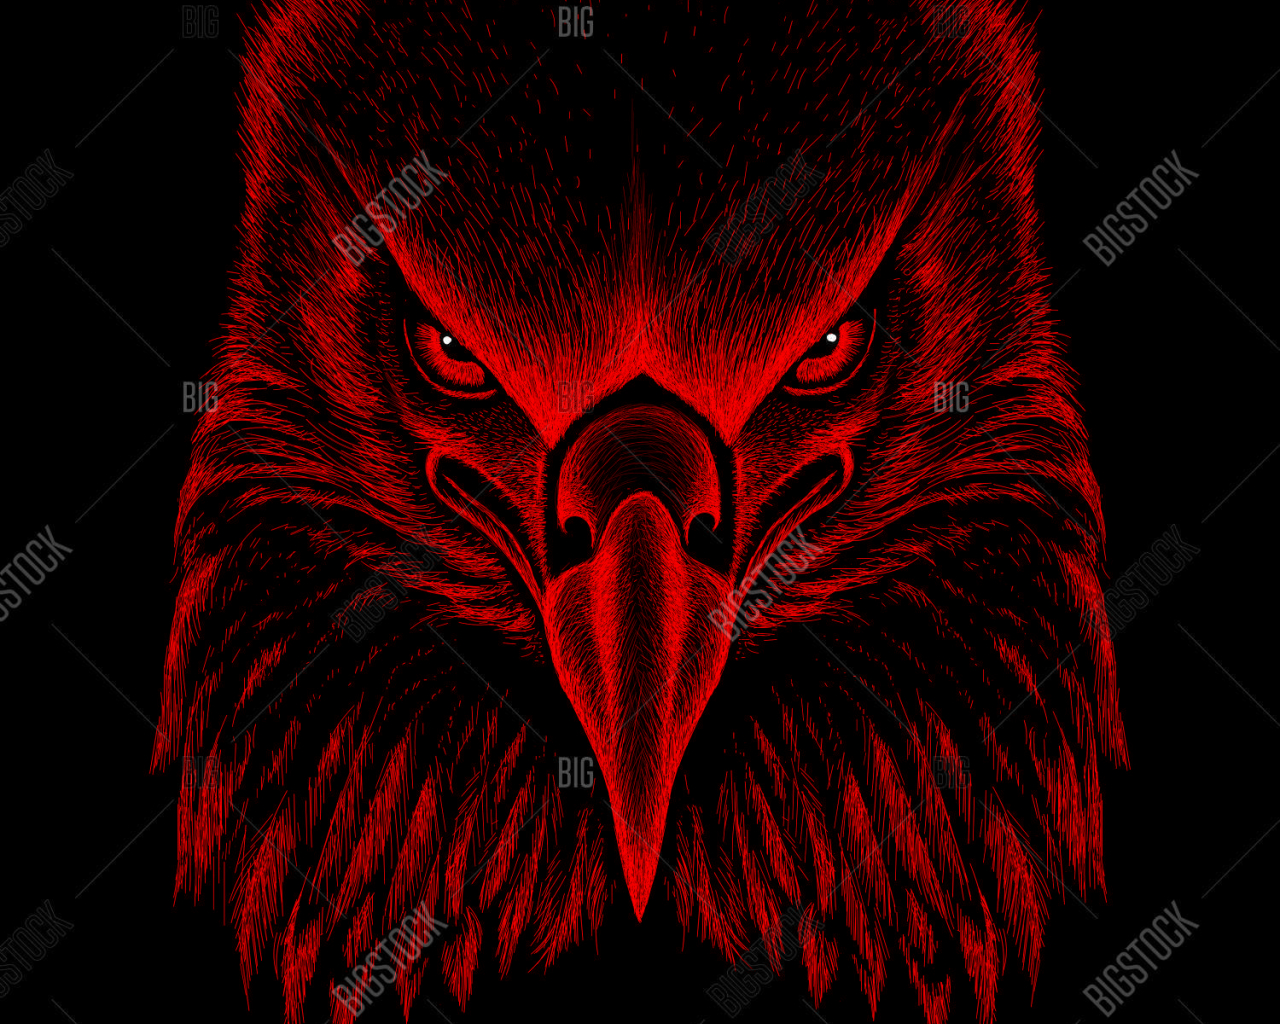 Free Download Logo Eagle Tattoo T Vector Photo Trial Bigstock 1500x1620 For Your Desktop Mobile Tablet Explore 36 Eagle Background Eagle Wallpaper Flying Eagle Wallpaper Desert Eagle Wallpapers Eagle tattoo wallpaper free download